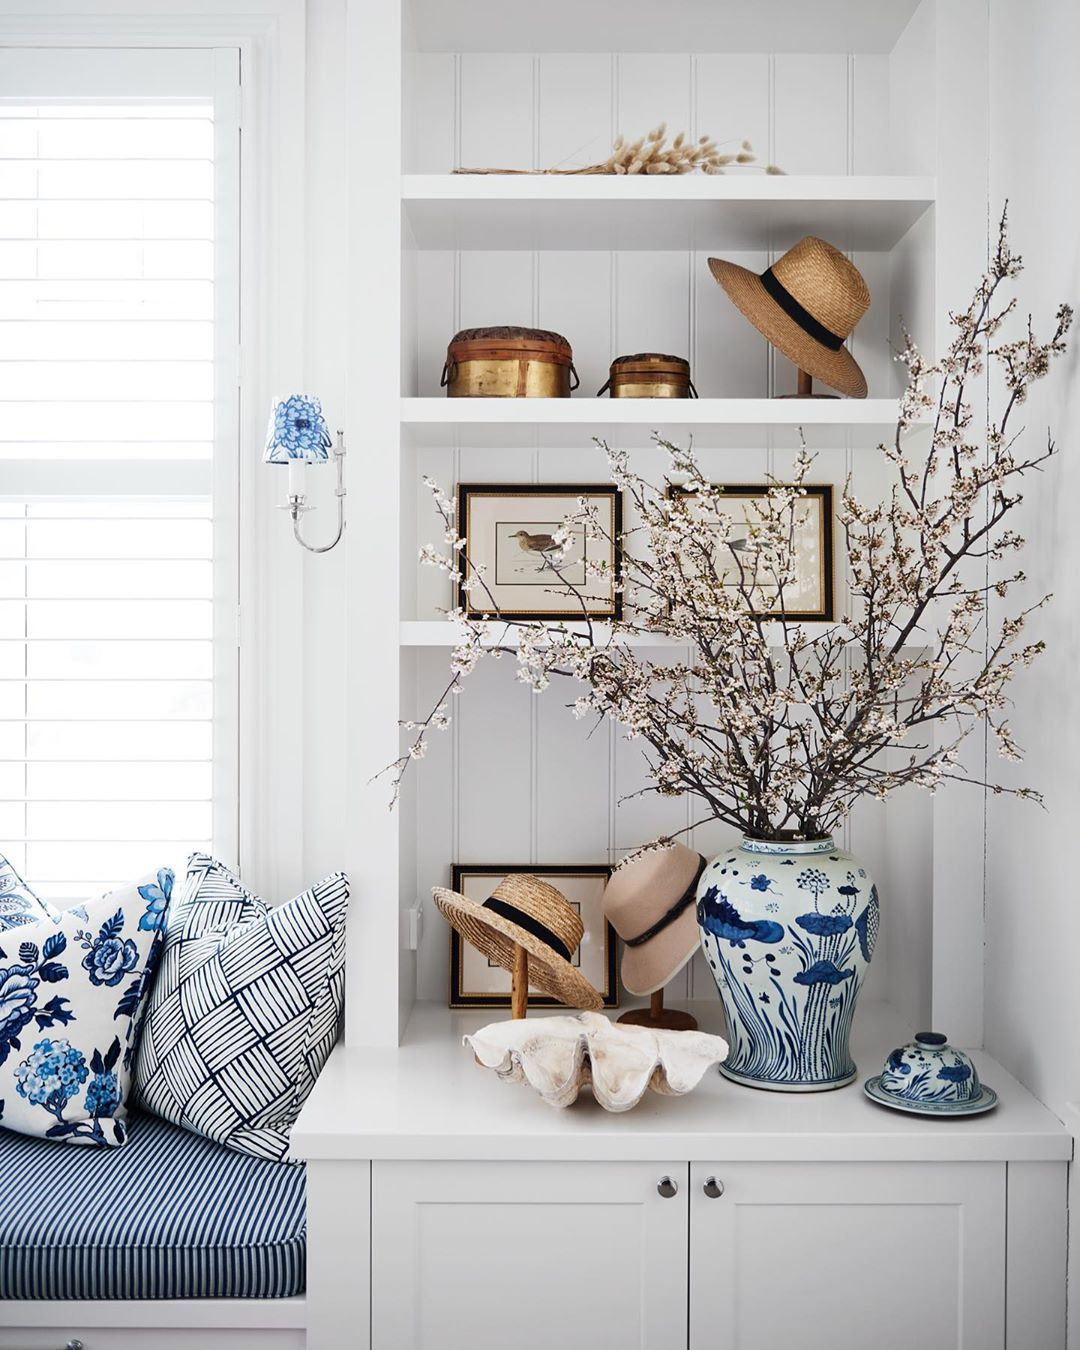 202 Likes, 6 Comments Maine House Interiors